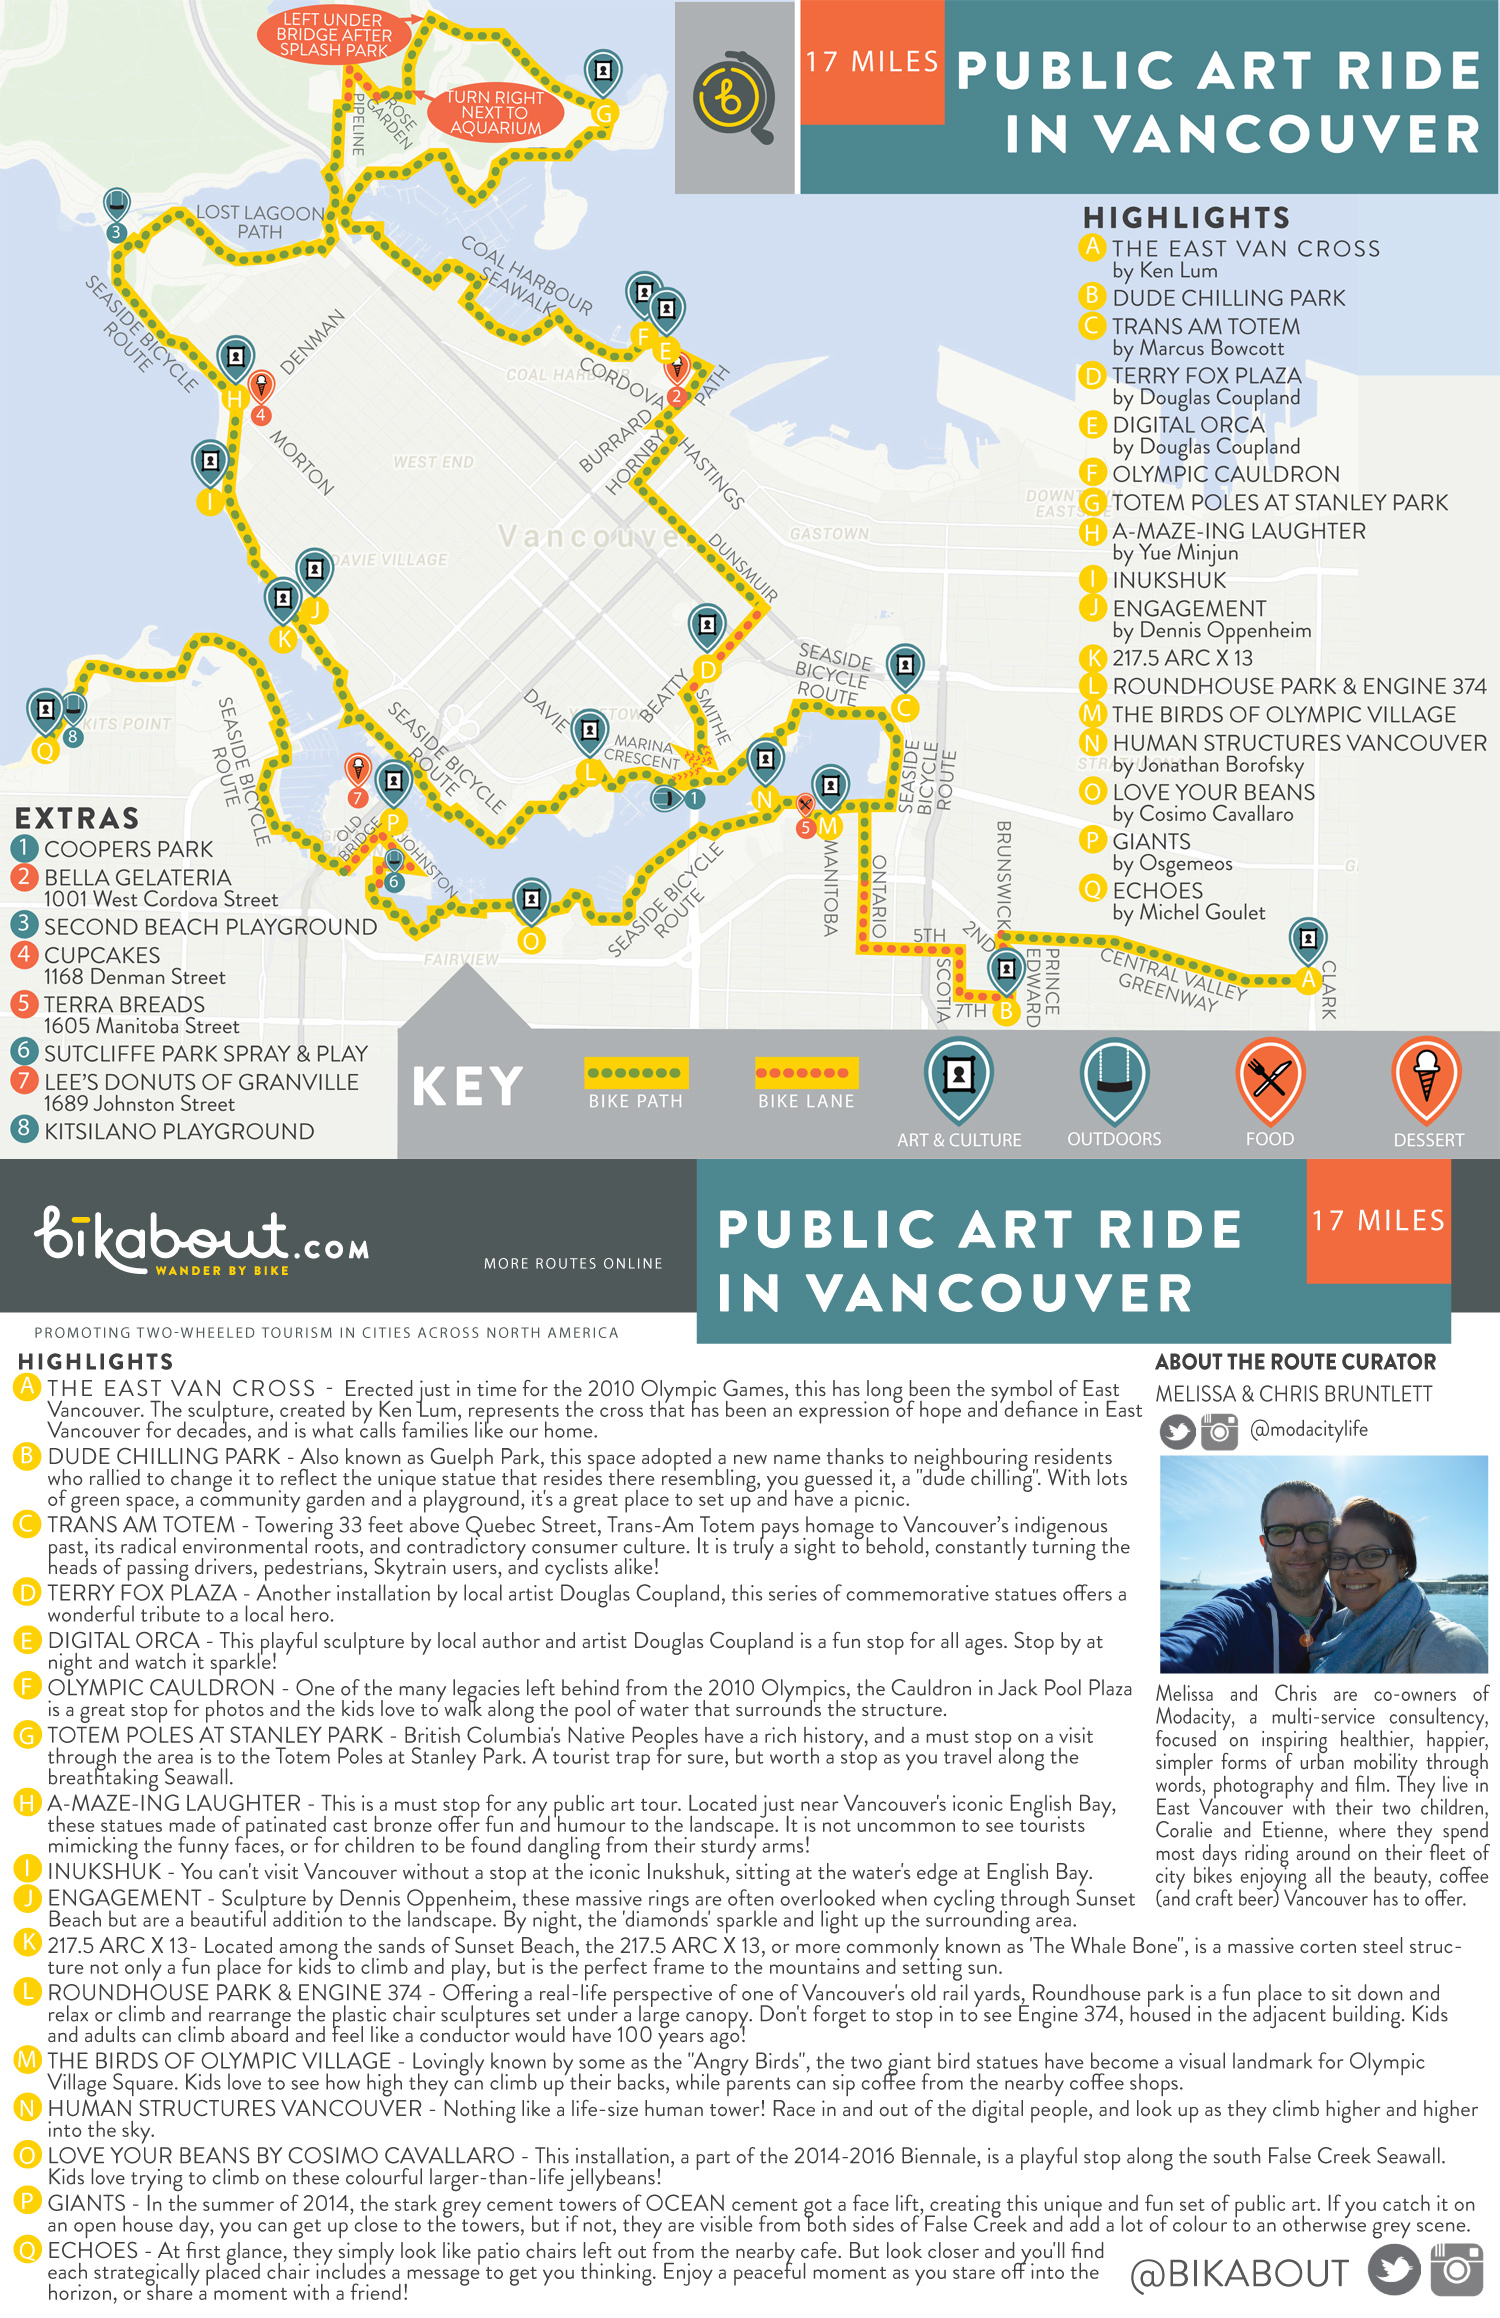 Public art ride in vancouver bikabout click on map image to download pdf gumiabroncs Gallery